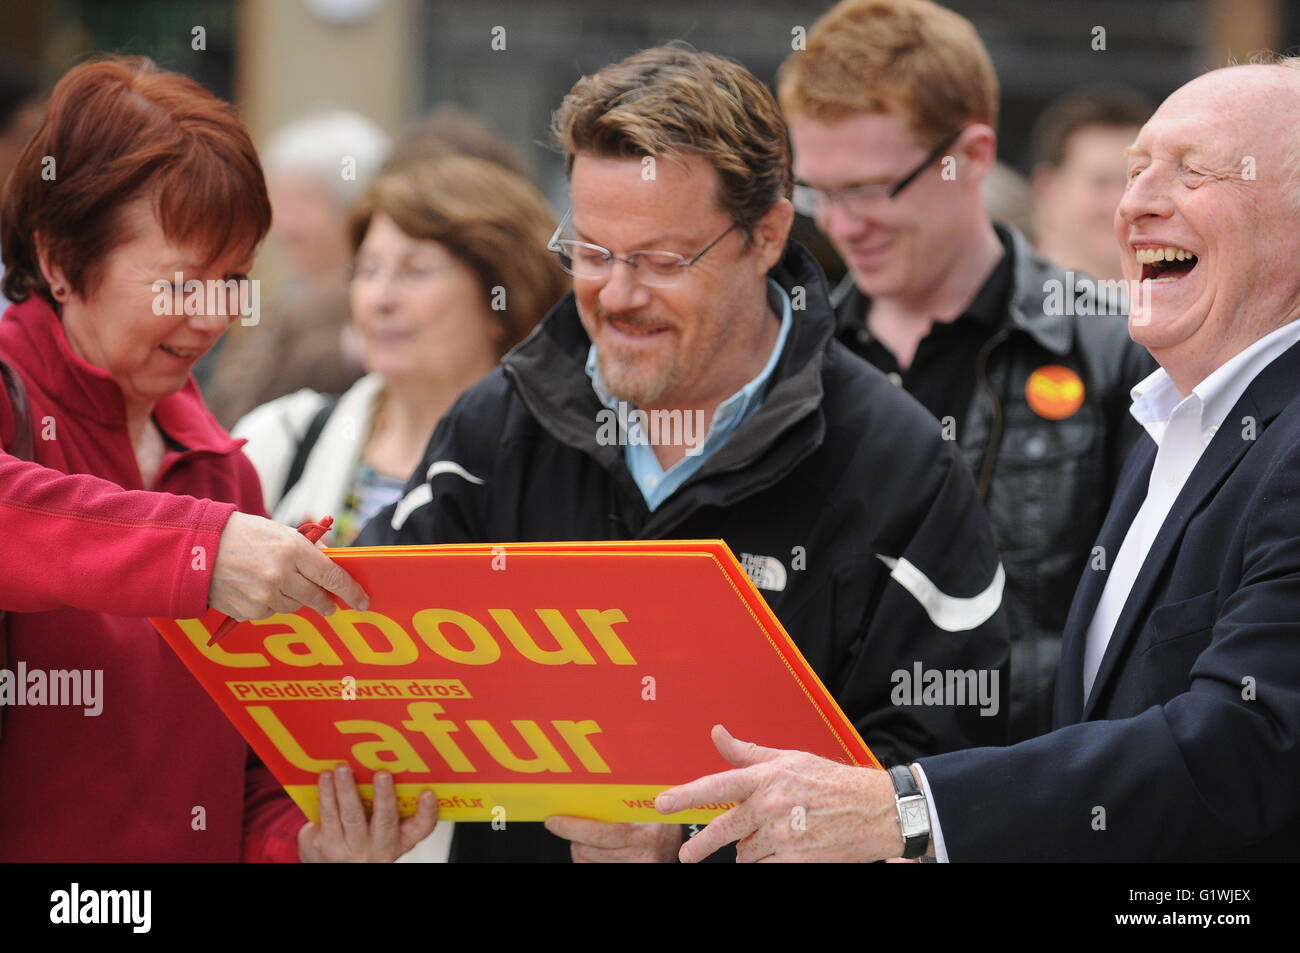 Eddie Izzard, who backs the remain in Europe campaign, campaigning for Labour in Cardiff, Wales. - Stock Image